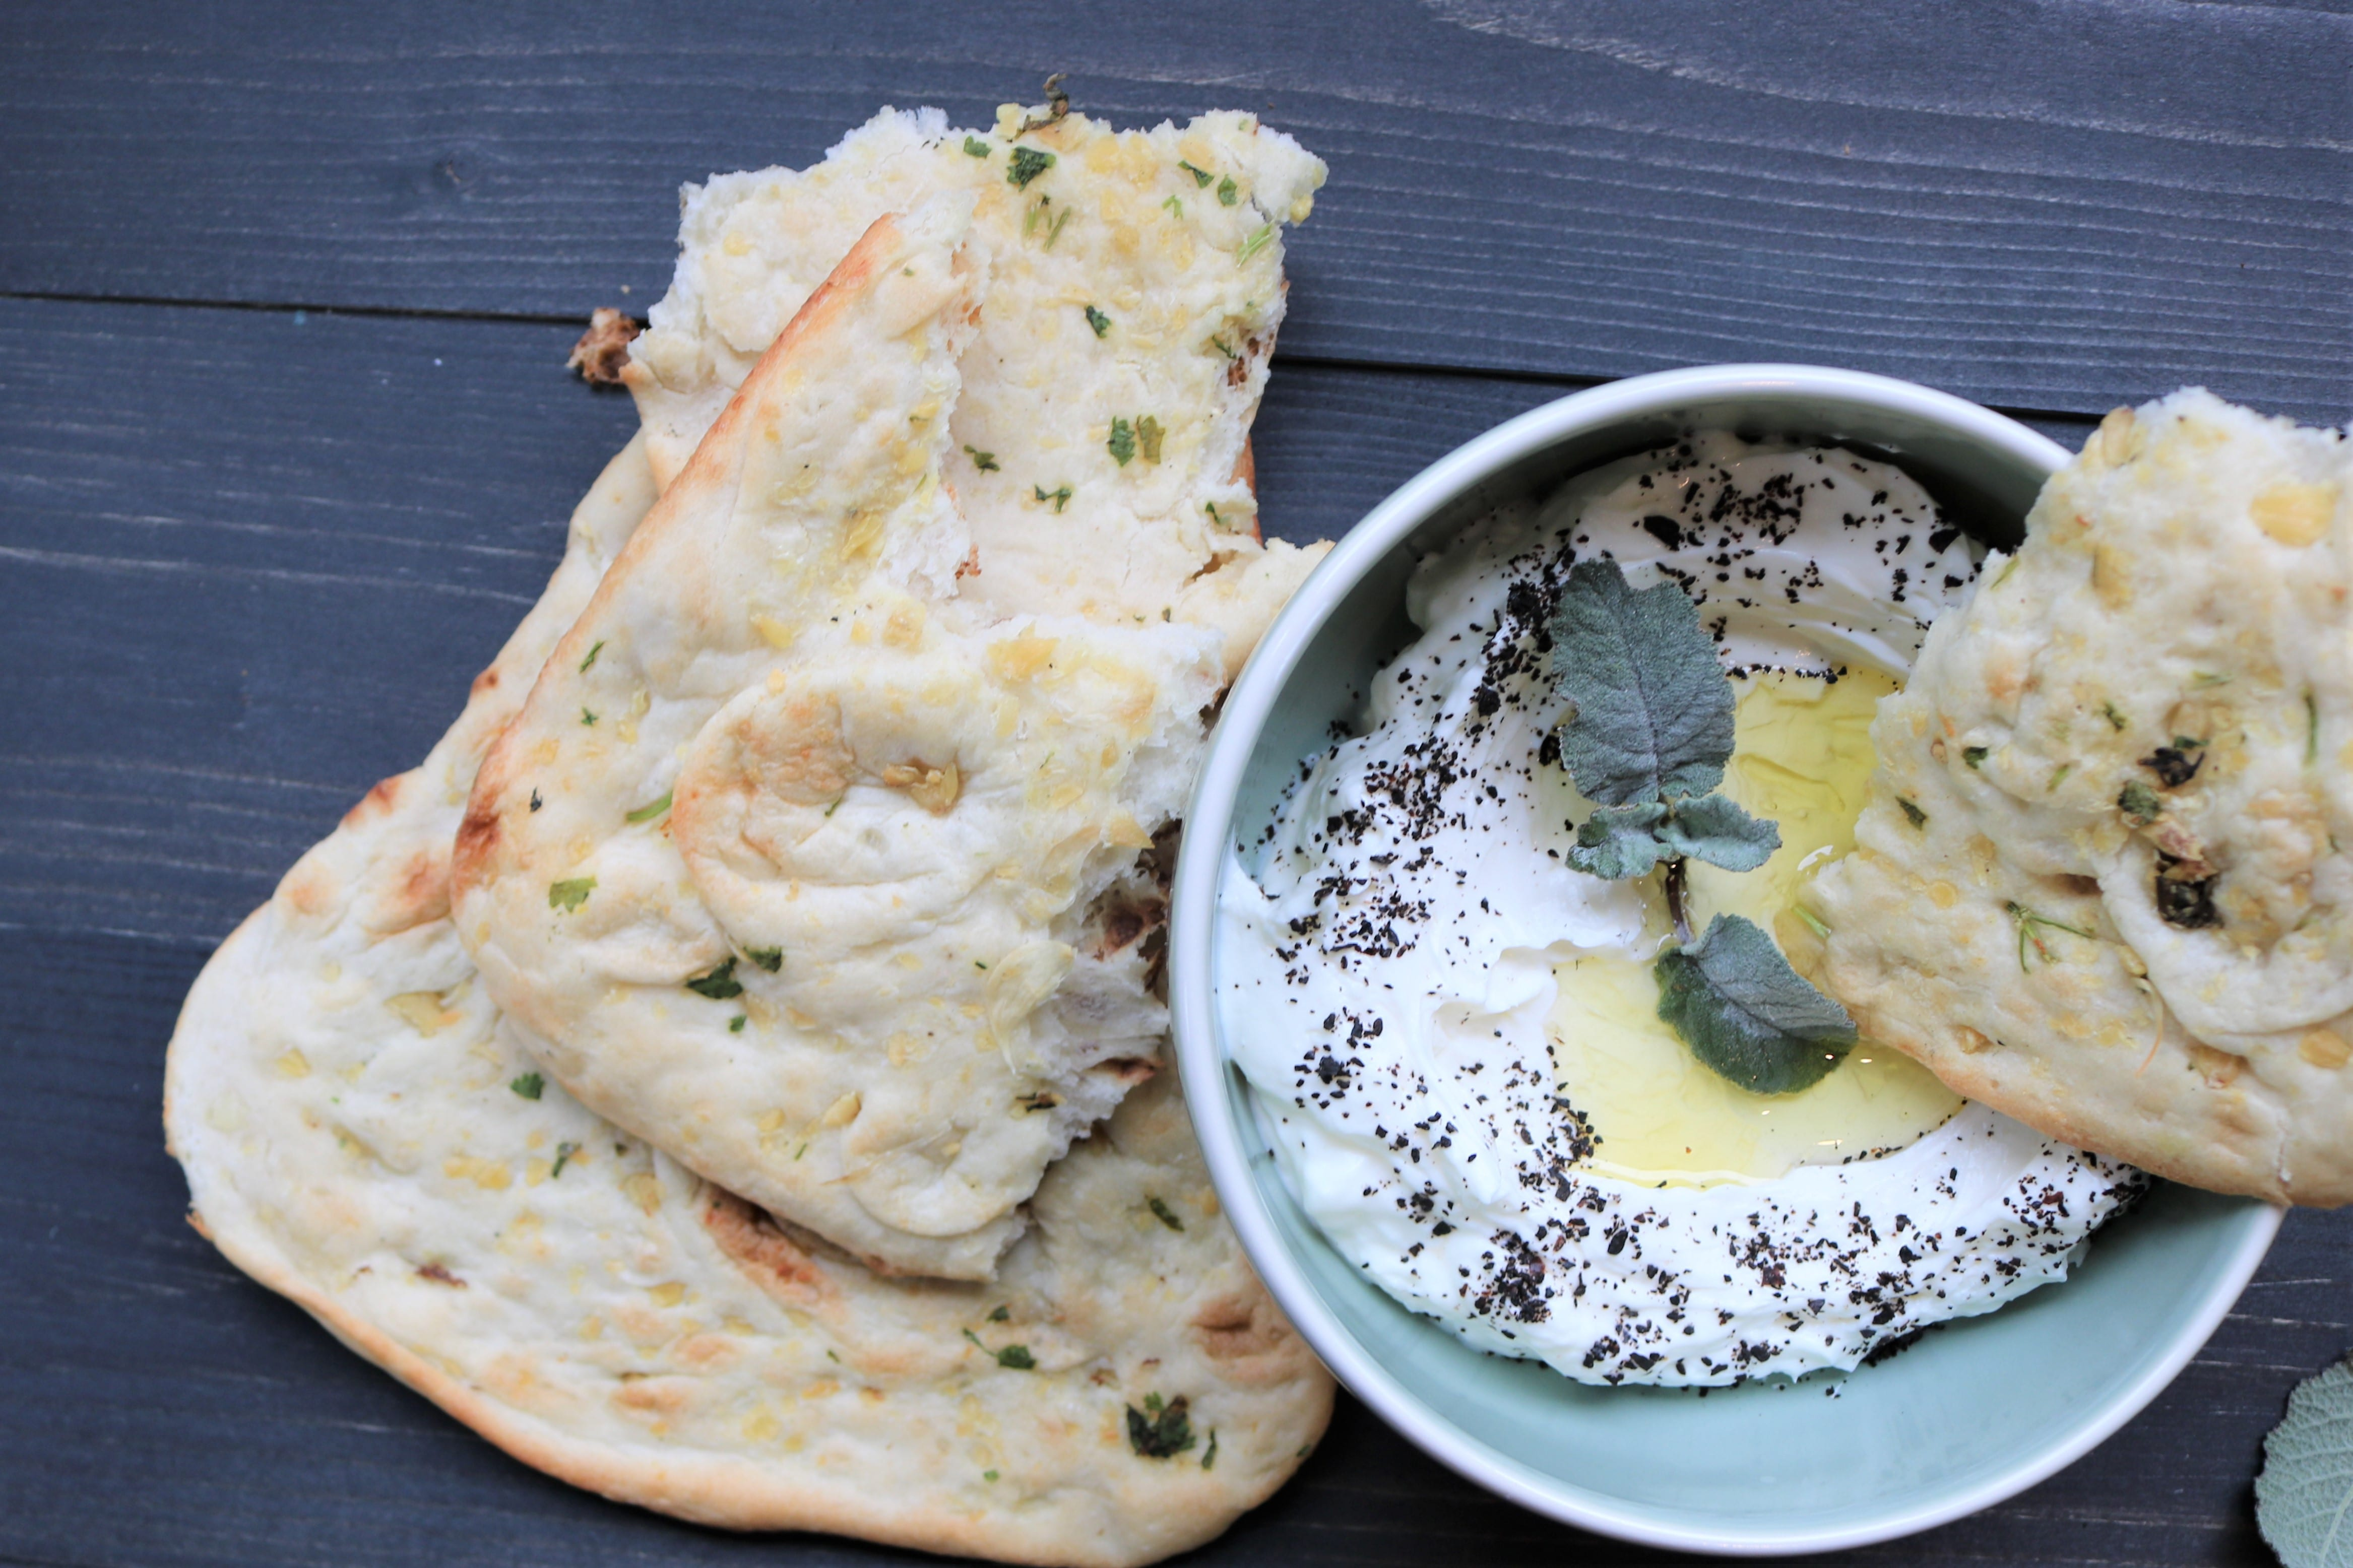 Labneh, Isot, naan